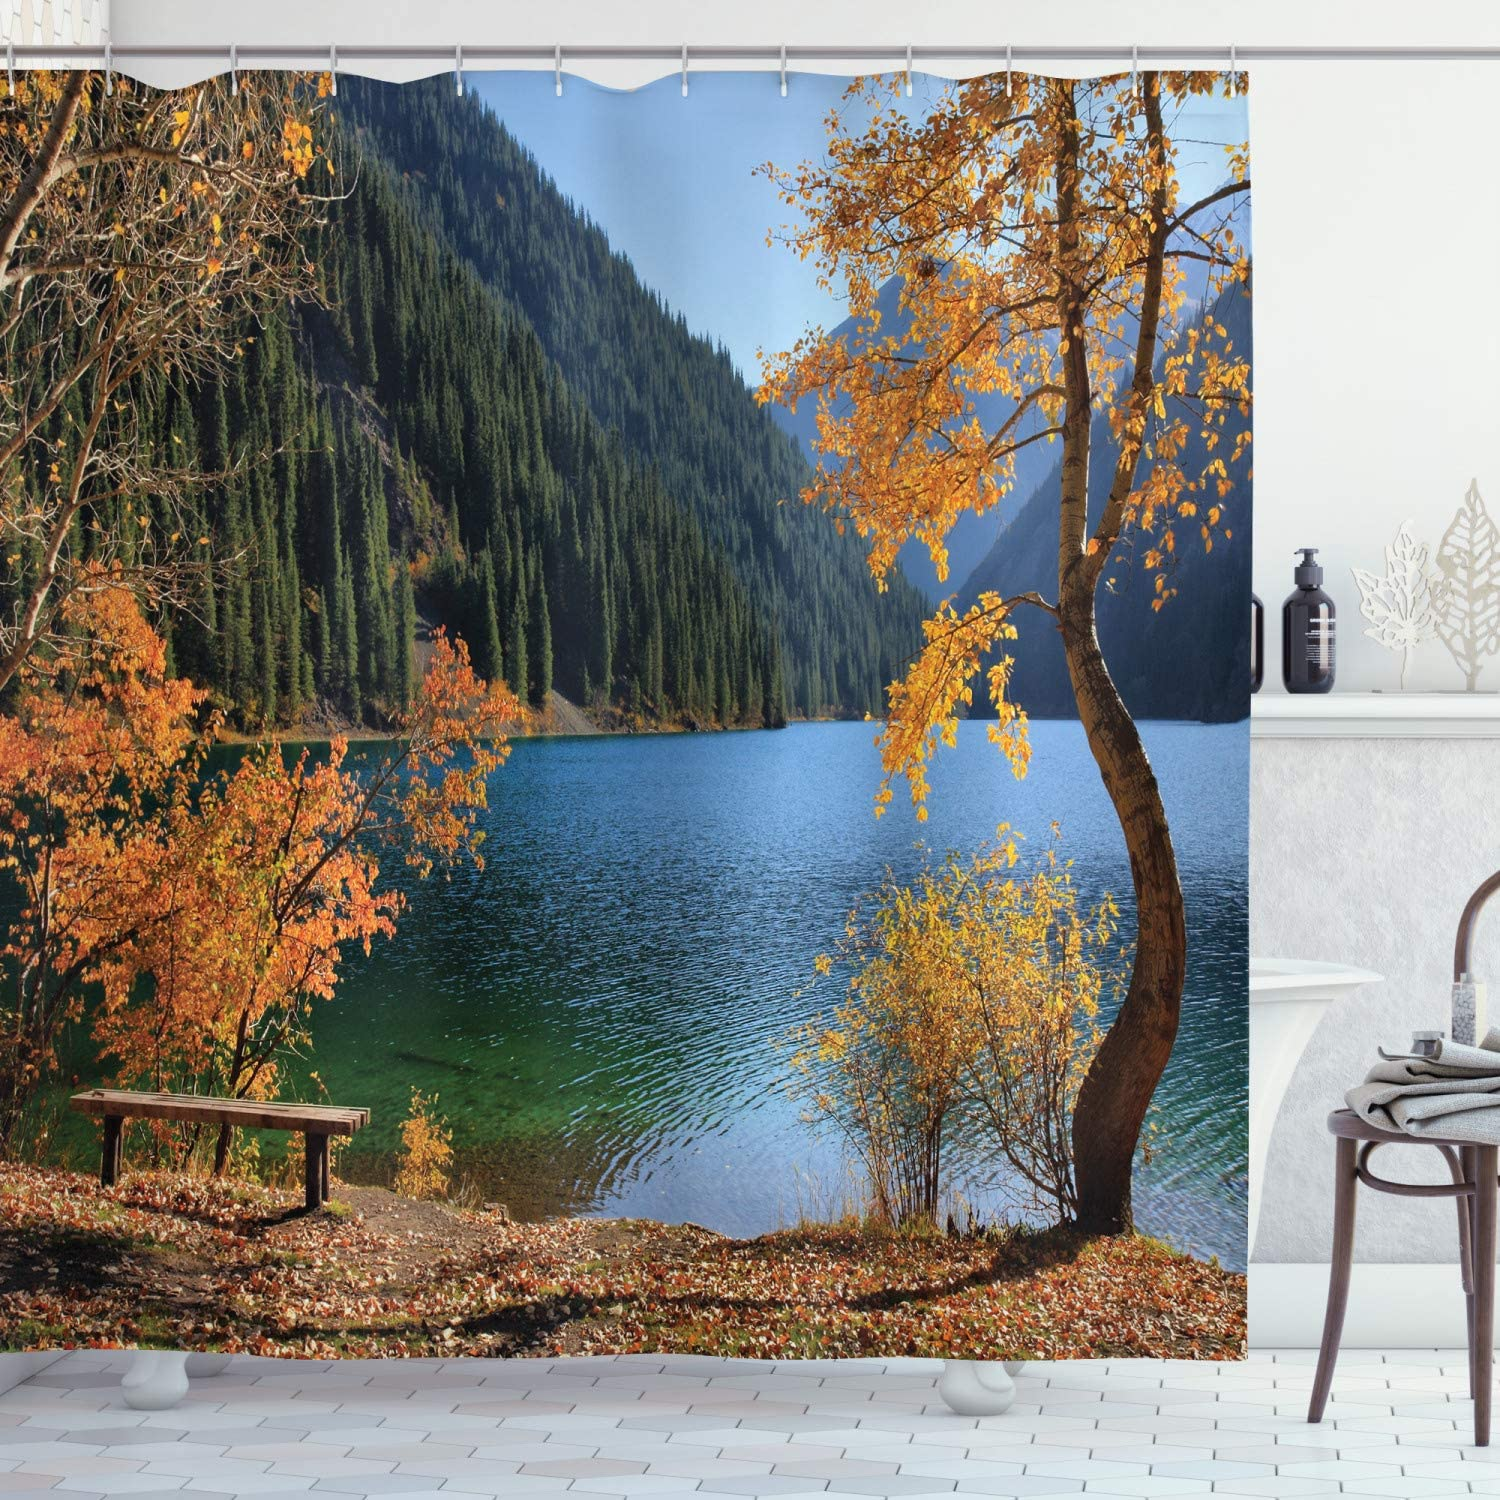 Amazon Com Ambesonne Tree Shower Curtain Autumn Season By Lake And Mountain Nature Theme Fall Trees In The Wilderness Cloth Fabric Bathroom Decor Set With Hooks 75 Long Orange Green Home Kitchen